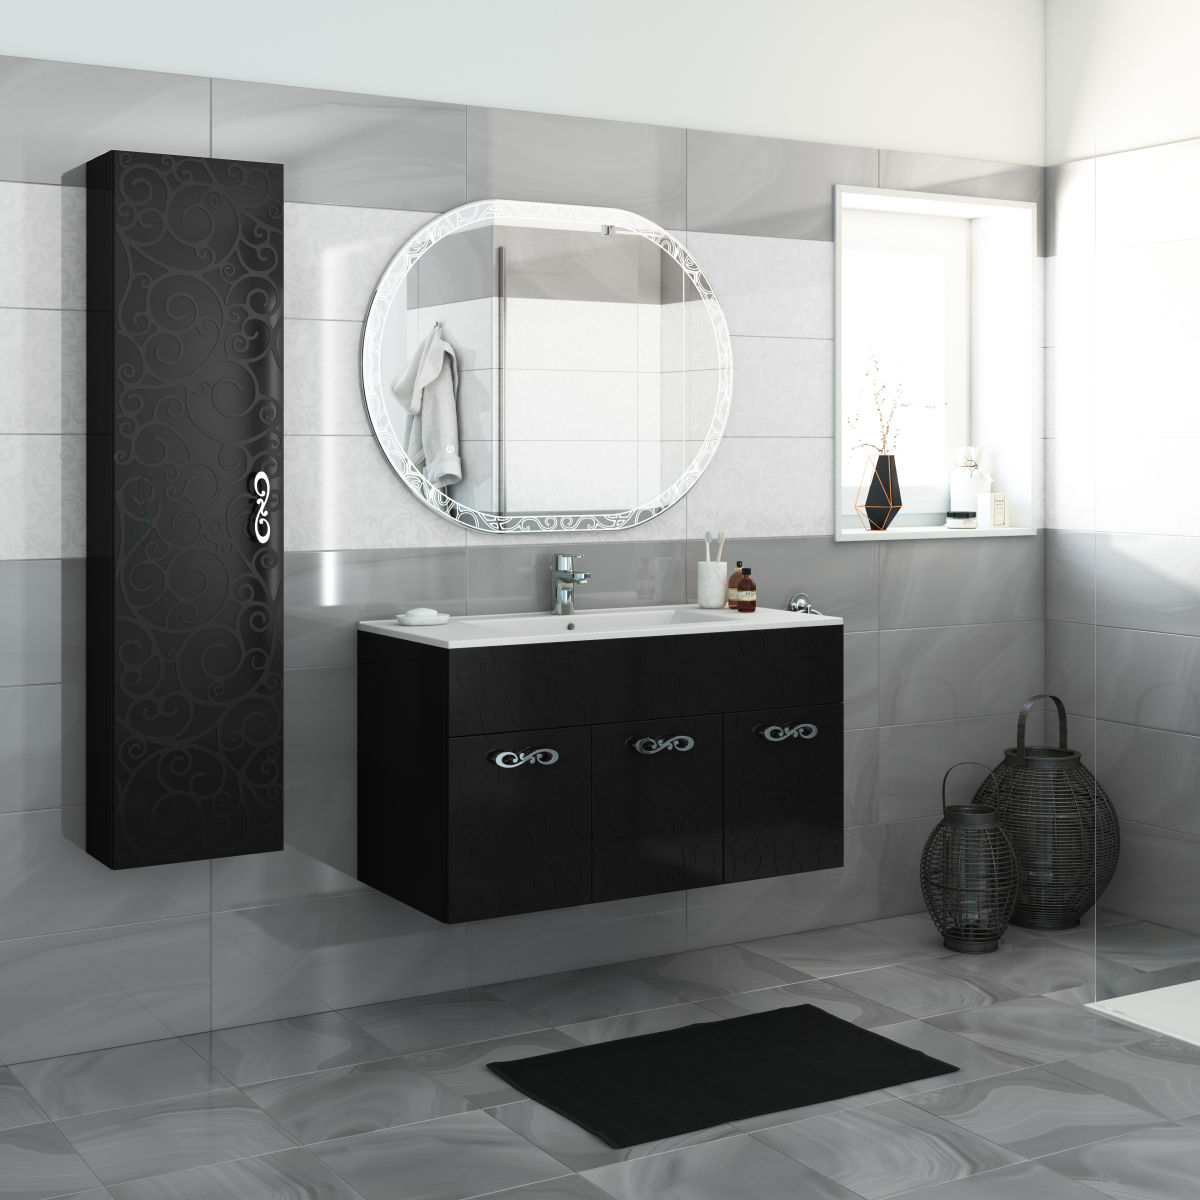 Bagno completo leroy merlin perfect page with bagno - Bagno completo ikea ...